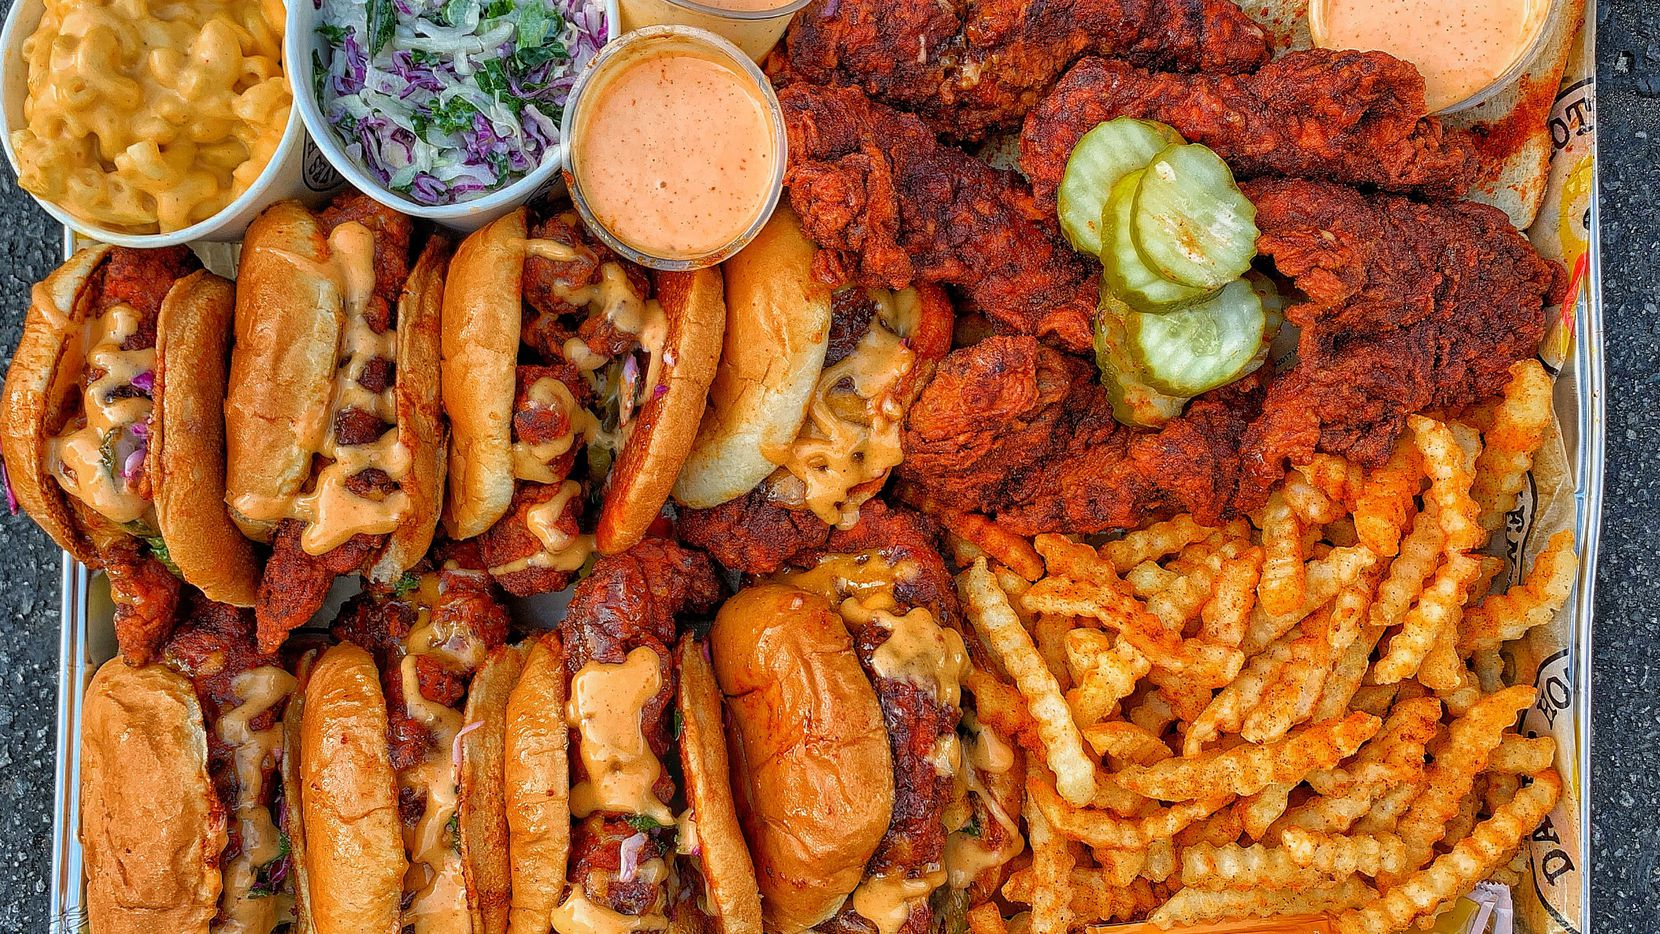 Two Texas restaurateurs plan to open up to 10 Dave's Hot Chicken restaurants in Dallas-Fort Worth, starting in 2021.